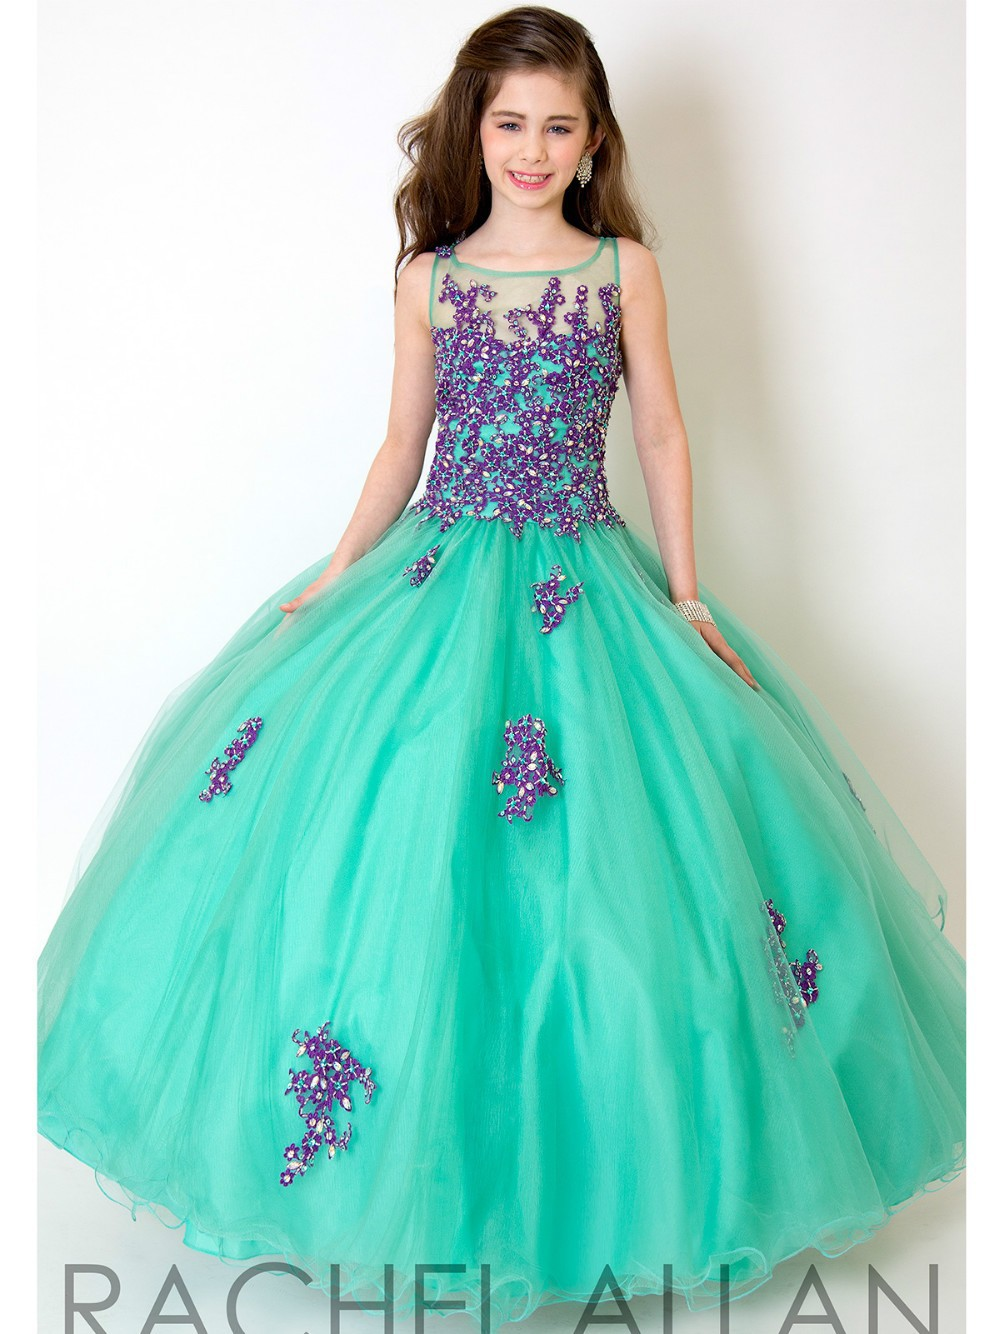 Compare Prices on Girls Puffy Dresses 12 Year Girls- Online ...